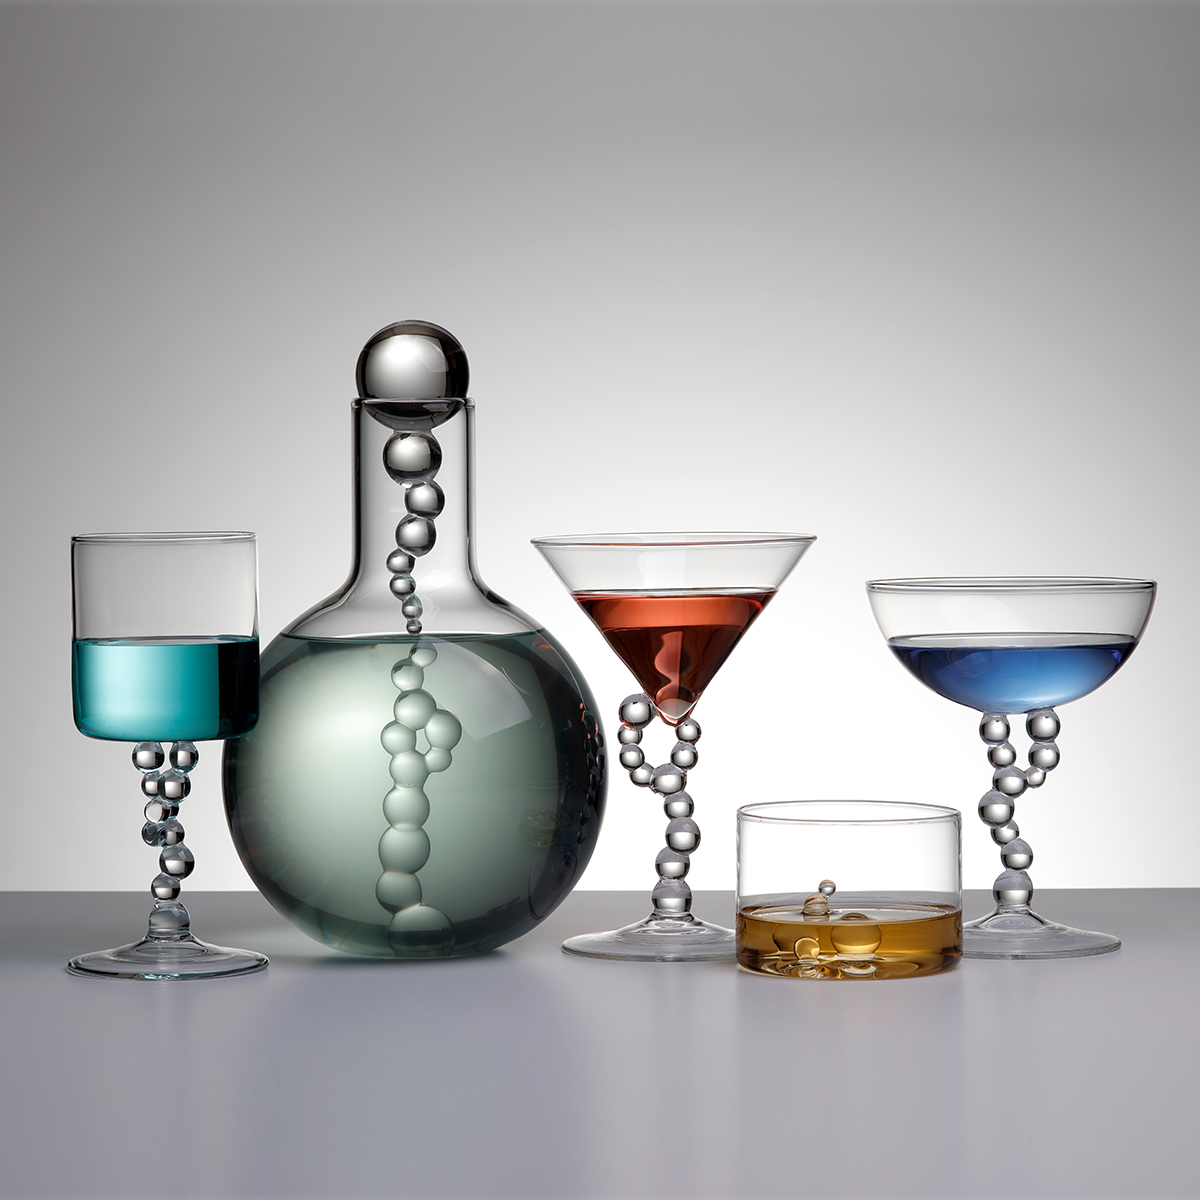 Hand-blown glasses and glass bottle